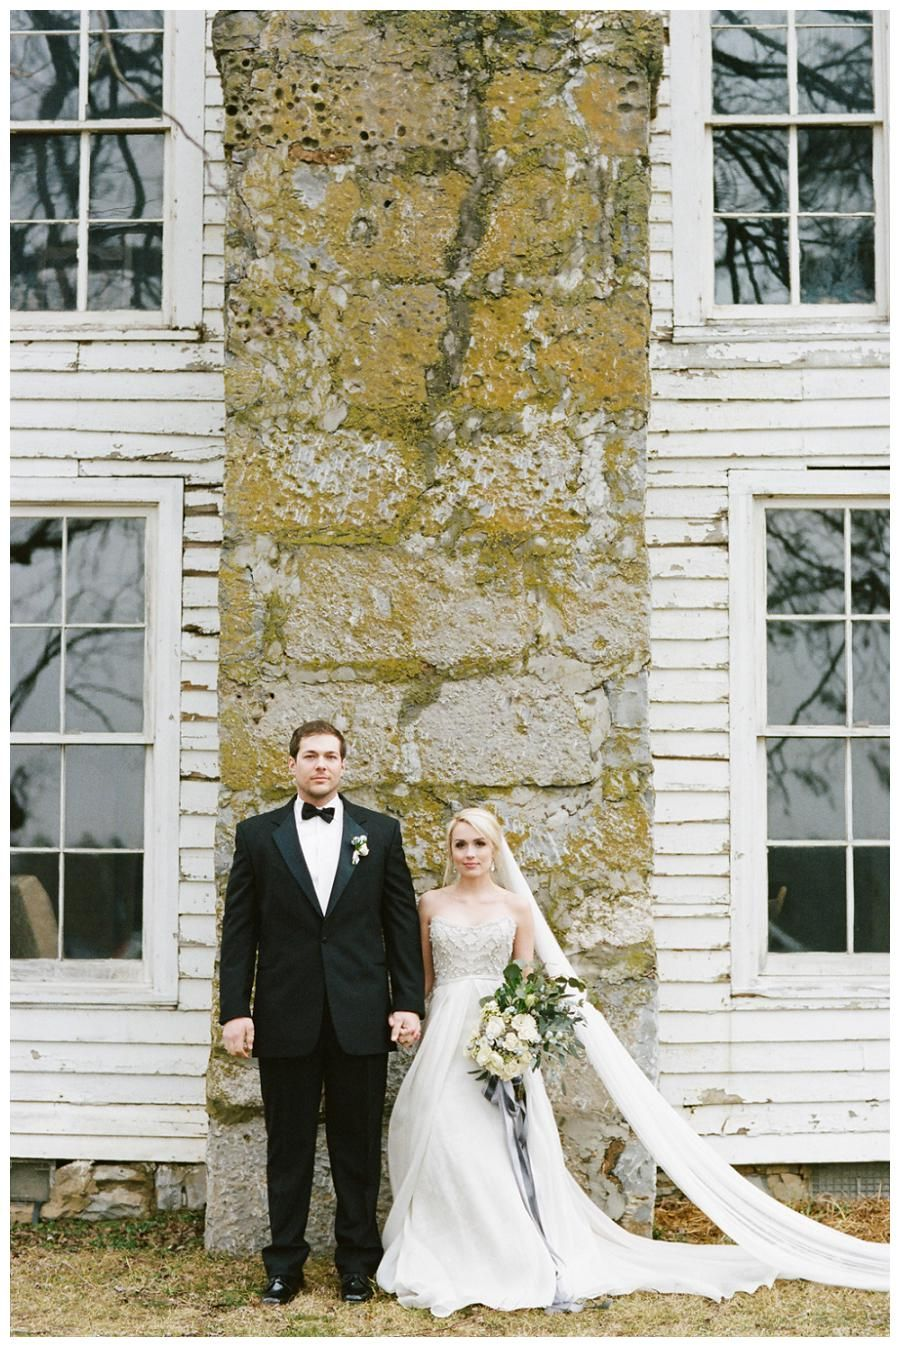 Beautiful bride and groom at The Hardy Chambers Farmhouse at Fly Creek Farm in Pulaski, TN. Image by White Rabbit Studios.